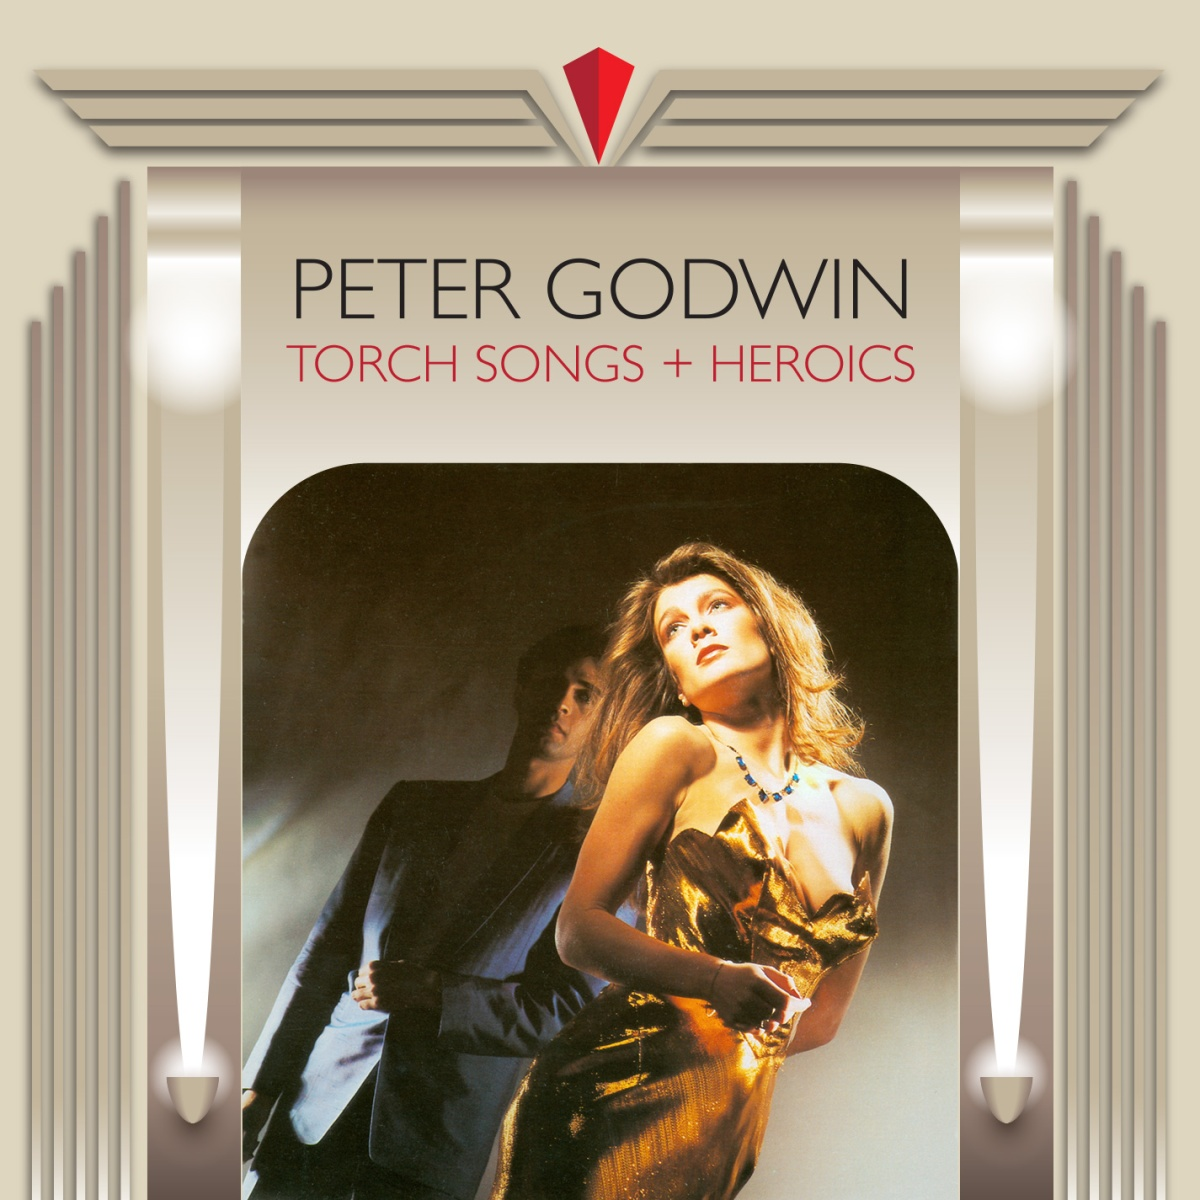 REVO Remastering: Peter Godwin – Torch Songs + Heroics [REVO 057]